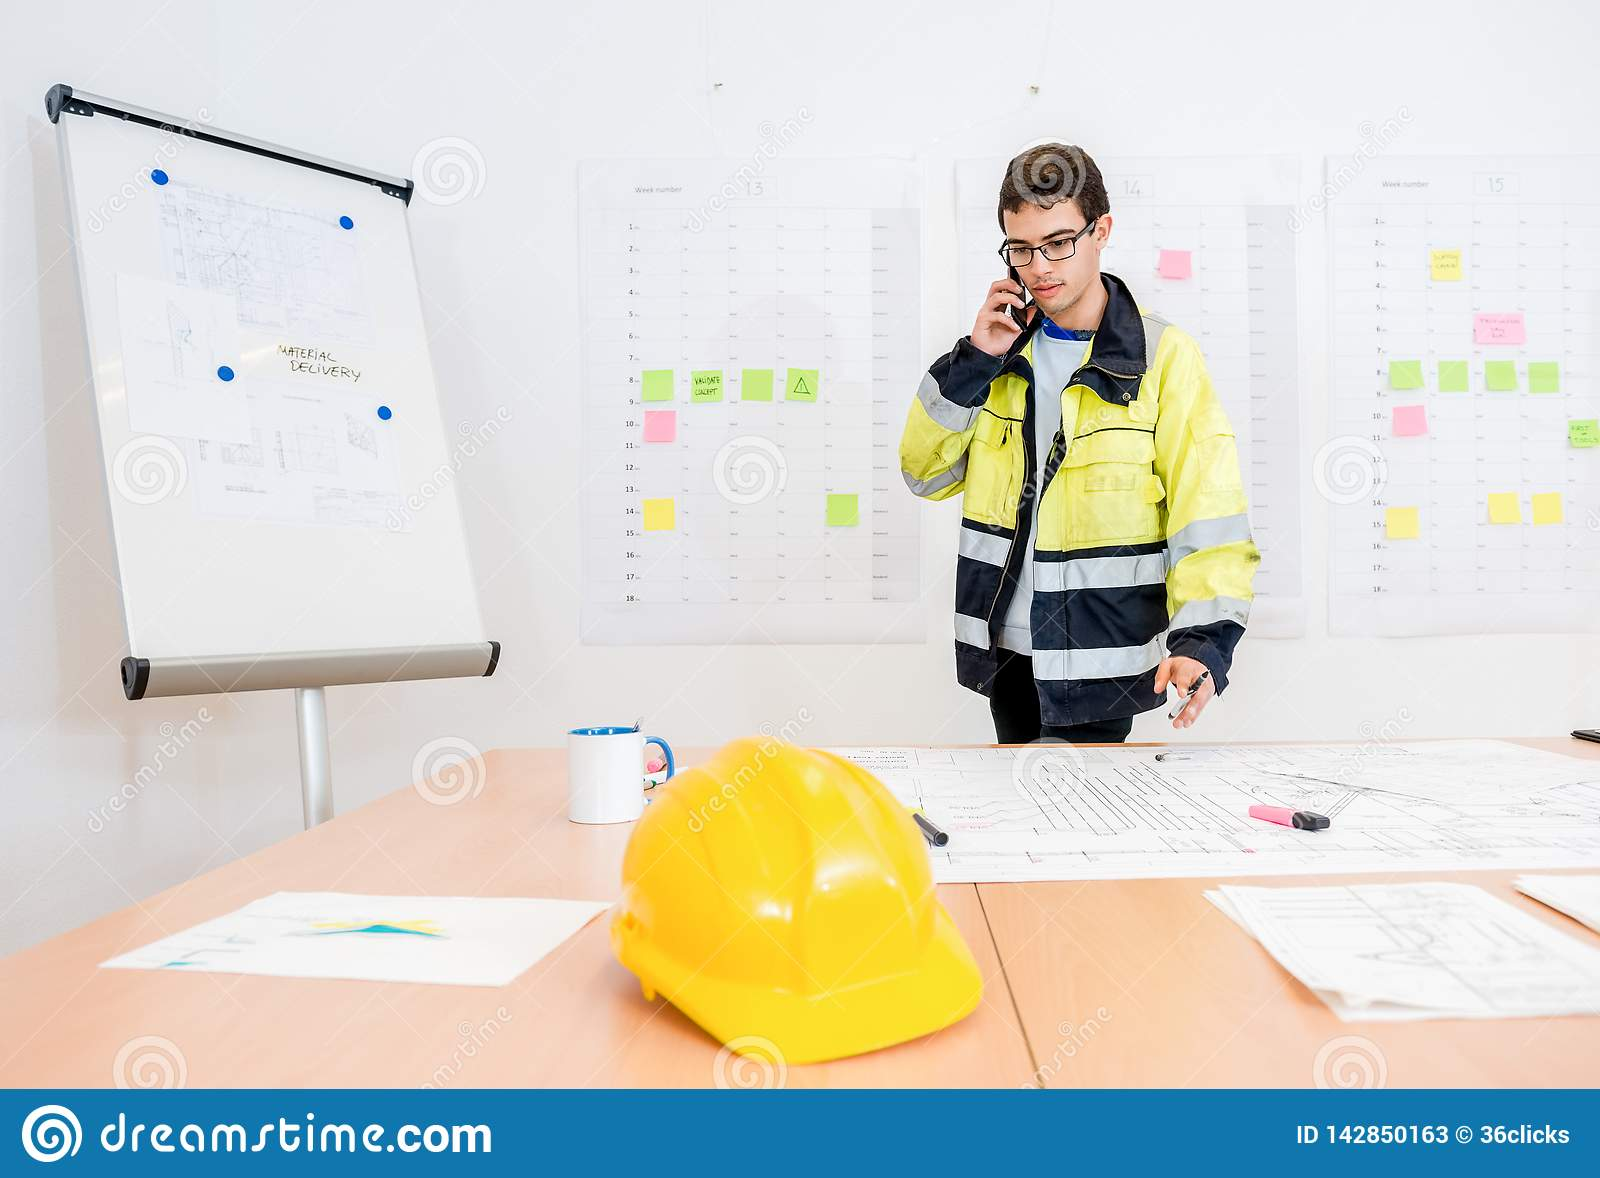 Businessman Talking On Mobile Phone At Office Table